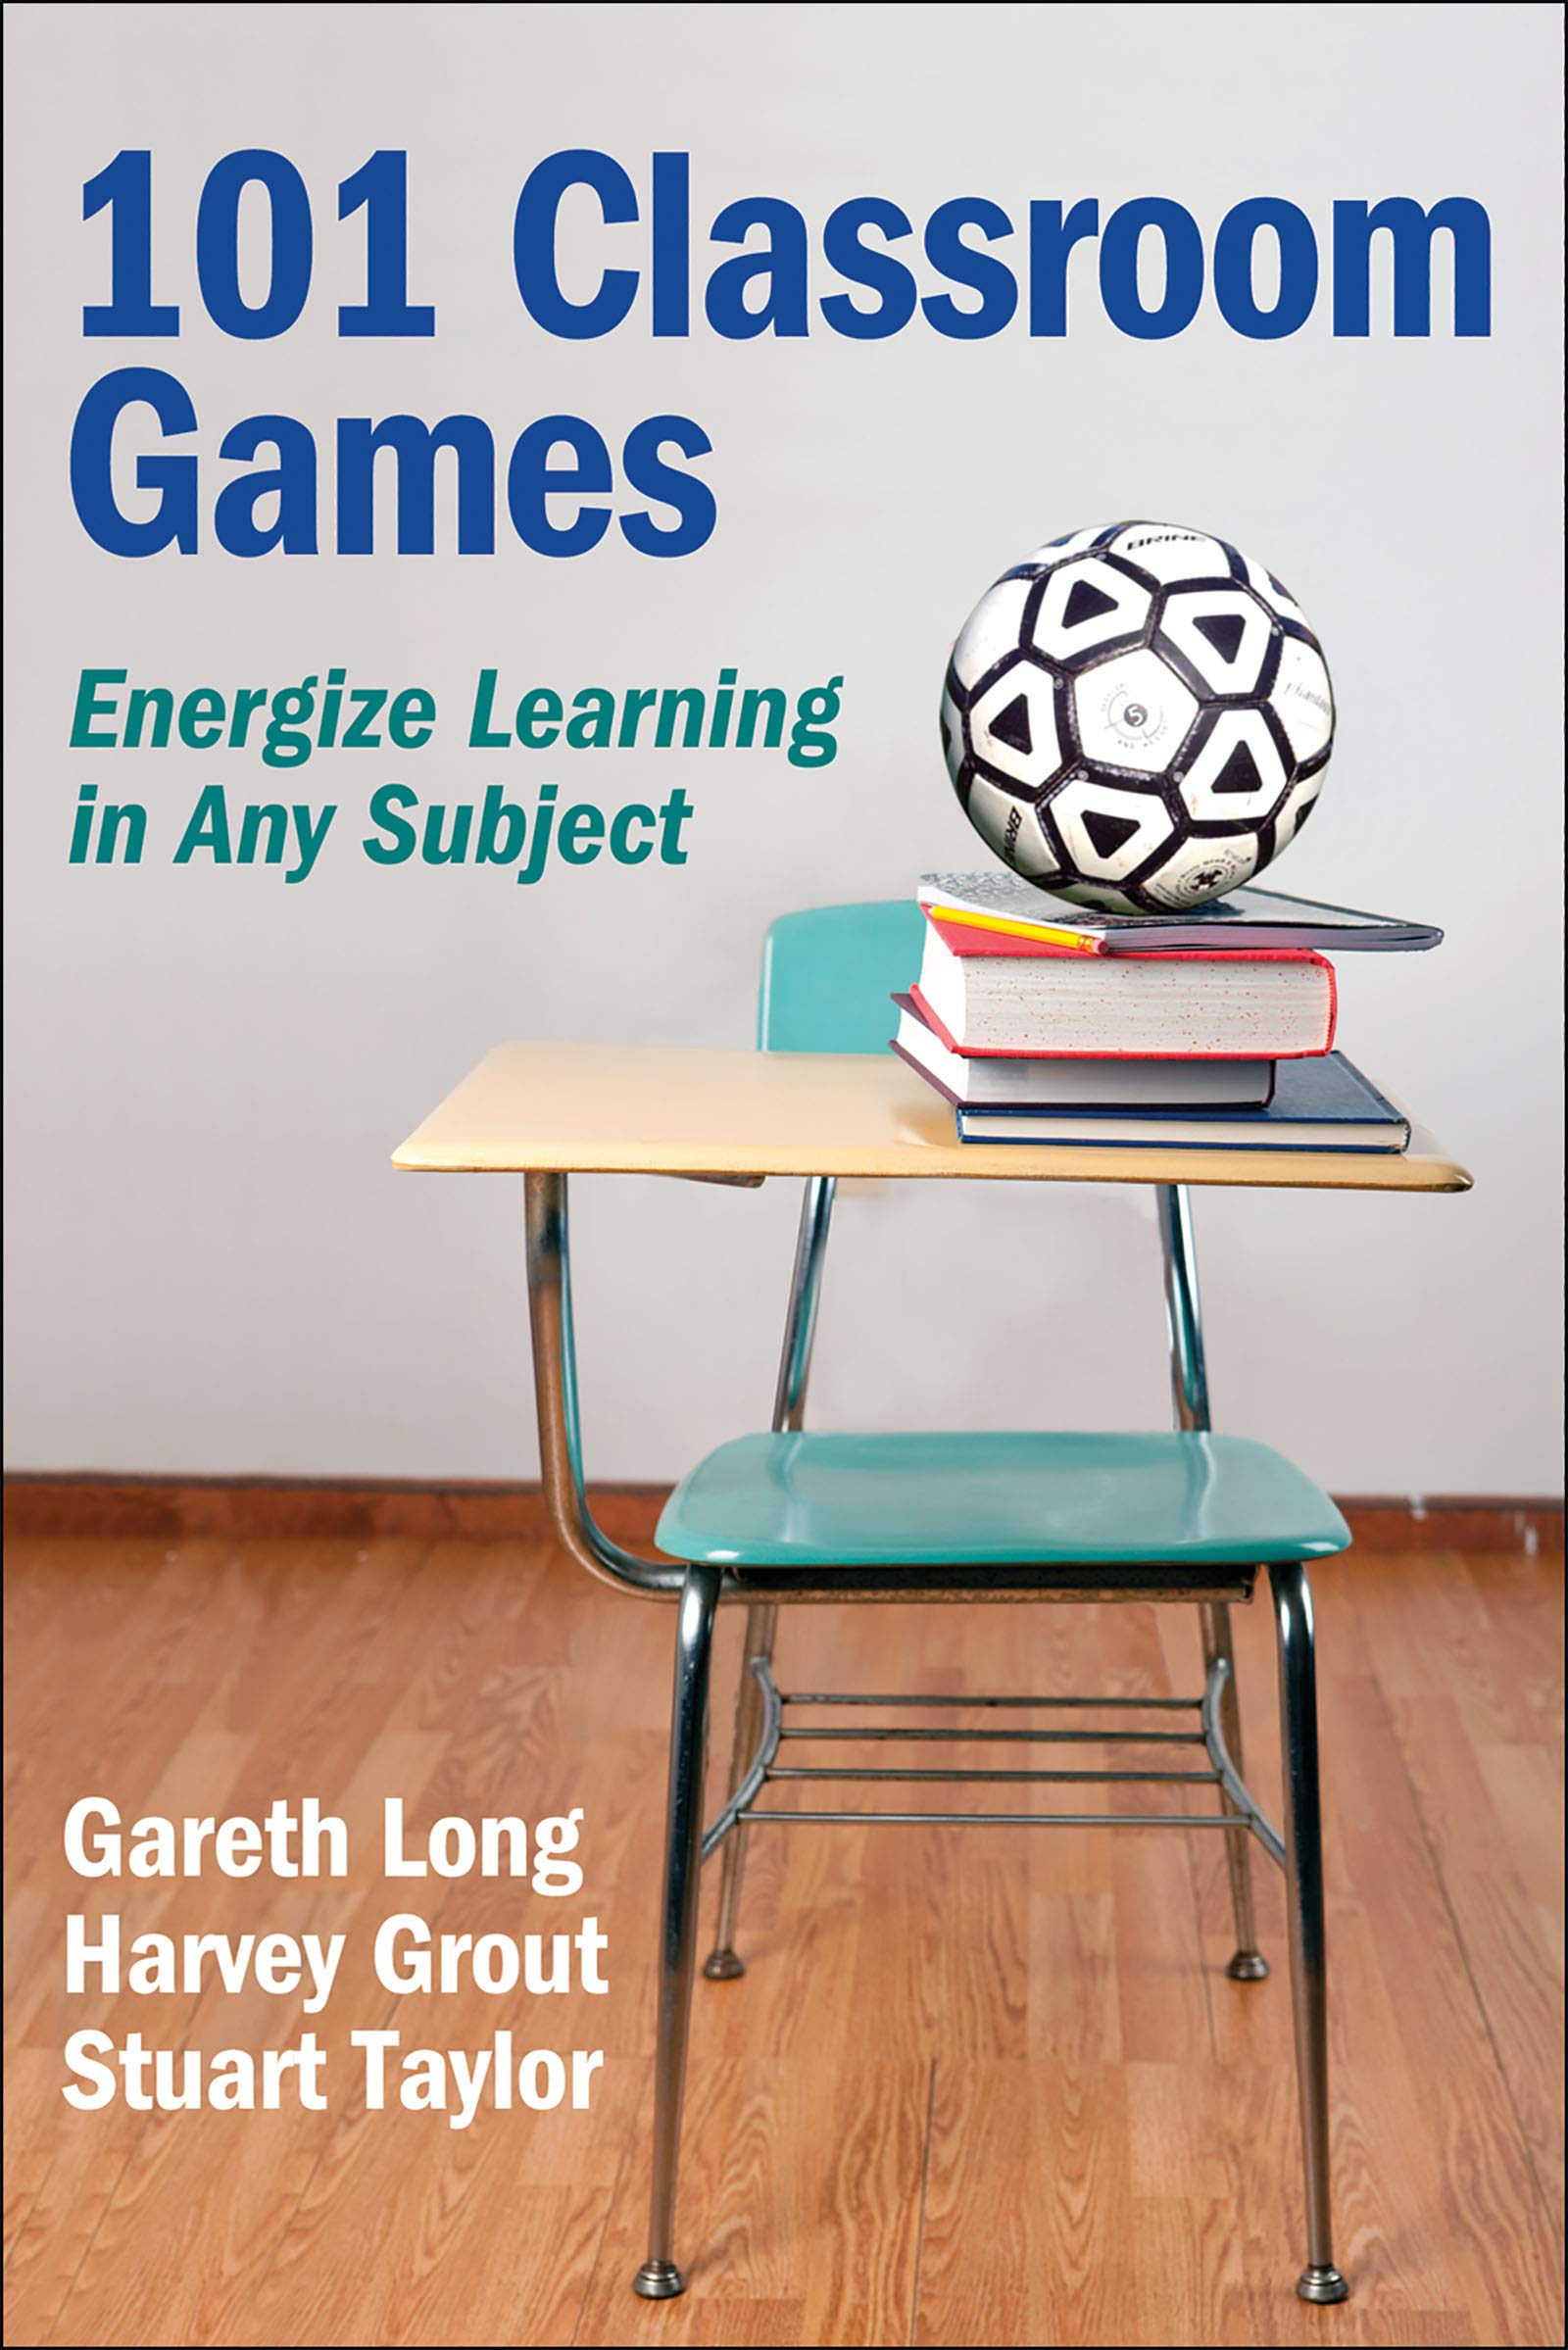 101 Classroom Games: Energize Learning in Any Subject: Gareth Long, Harvey  Grout, Stuart Taylor: 9780736095105: Administration: Amazon Canada